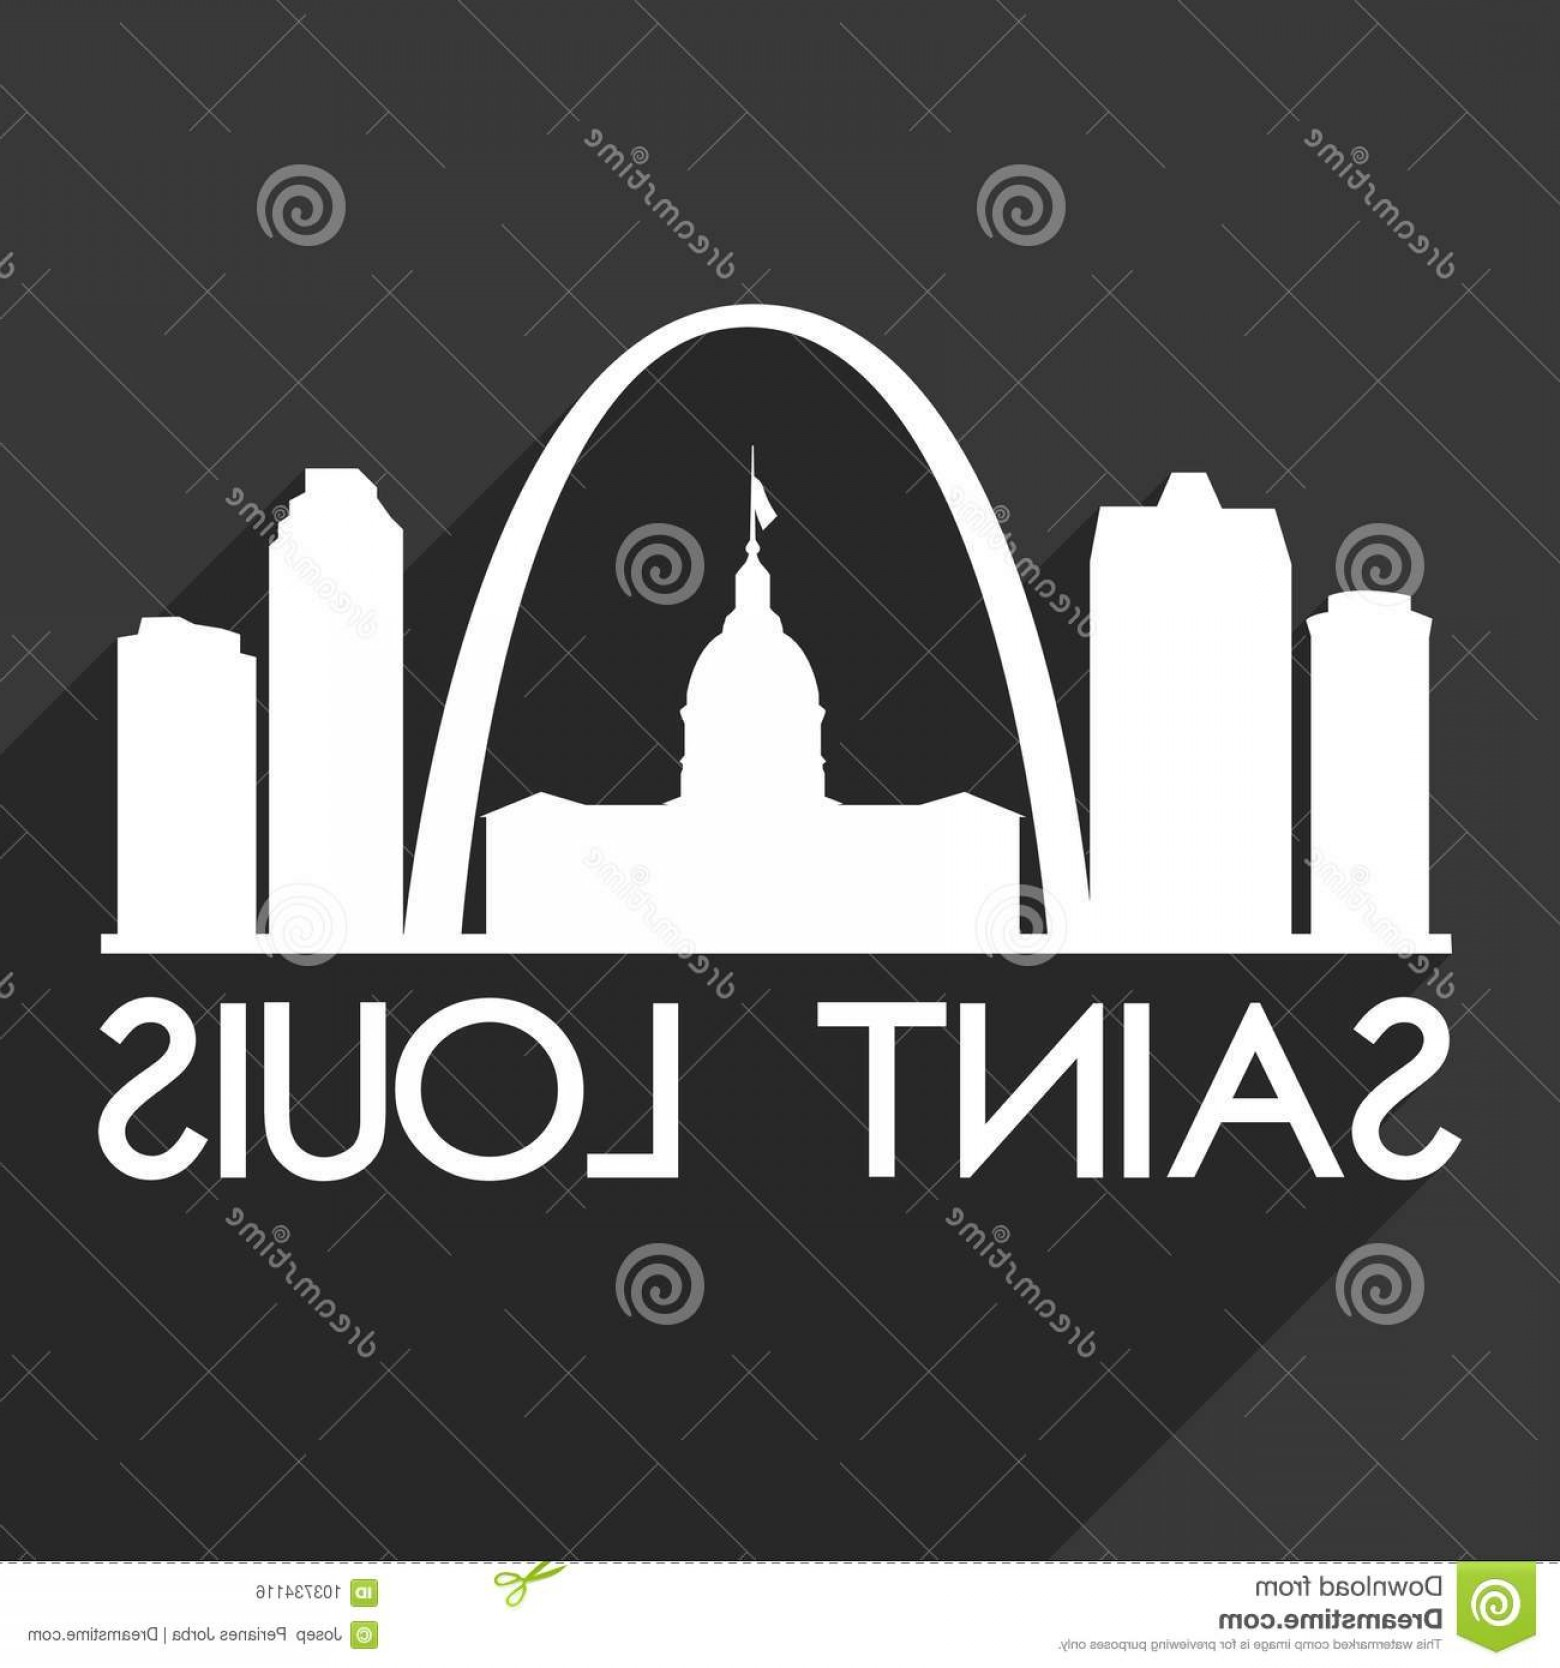 Arch Vector Illinios: Saint Louis Missouri Usa City Icon Vector Art Design Skyline Night Flat Shadow Emblematic Elements Its Black Background Image